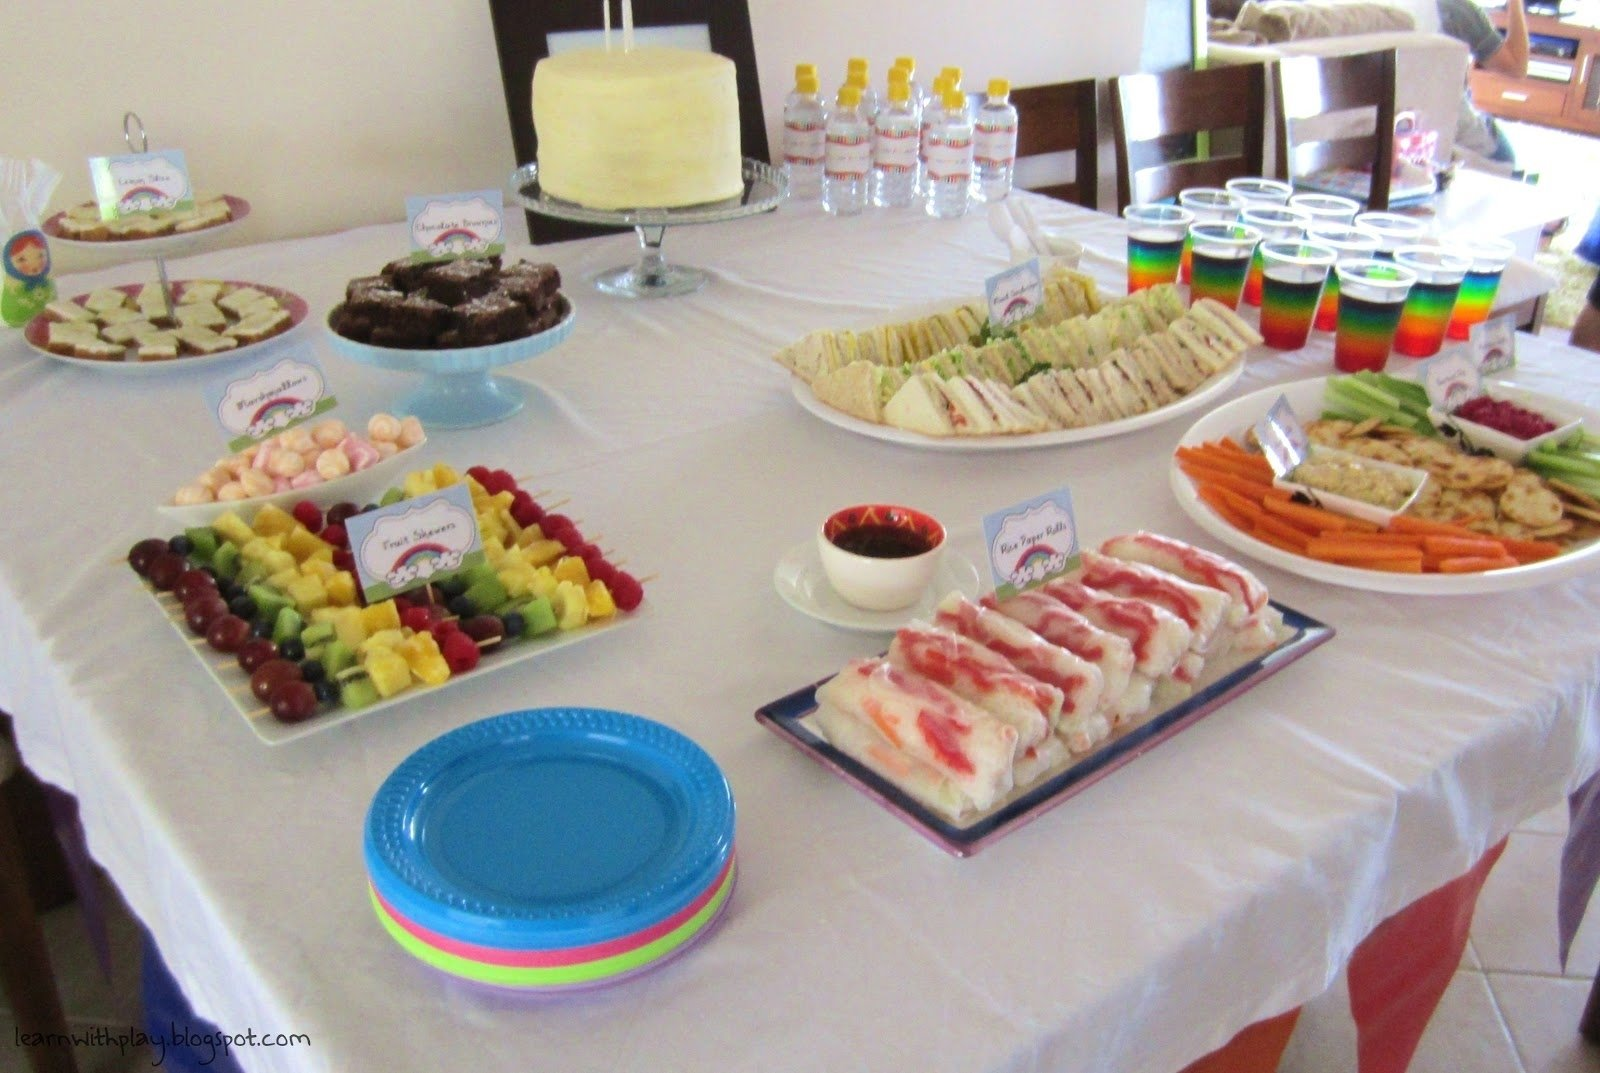 10 Famous Birthday Party Menu Ideas For Adults famed pink party ideas and adults birthday party me ideas allure 2020